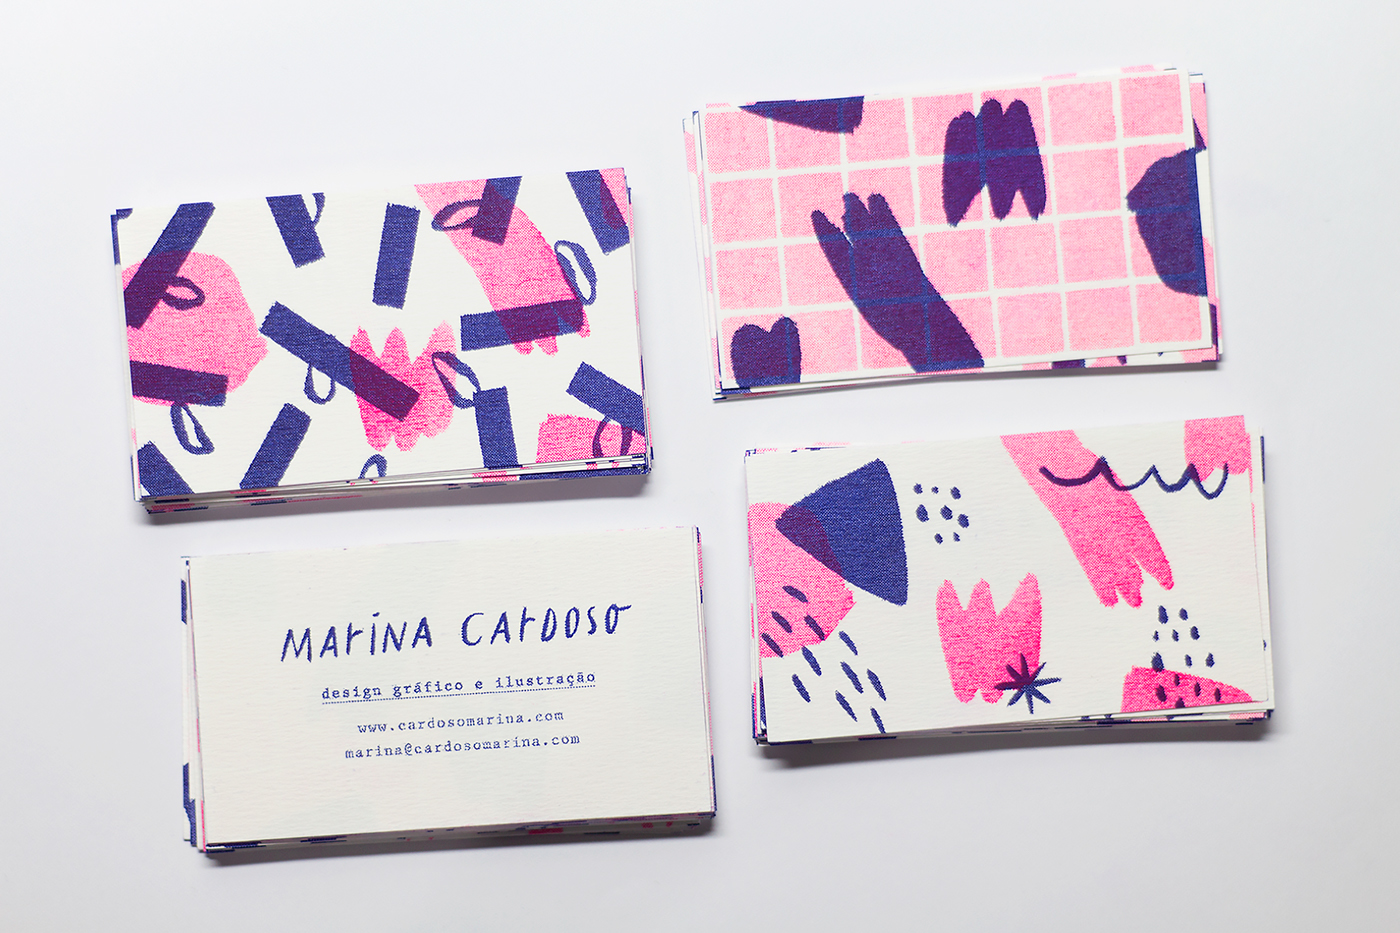 Riso risograph business card Business Cards cards ILLUSTRATION  pattern personal